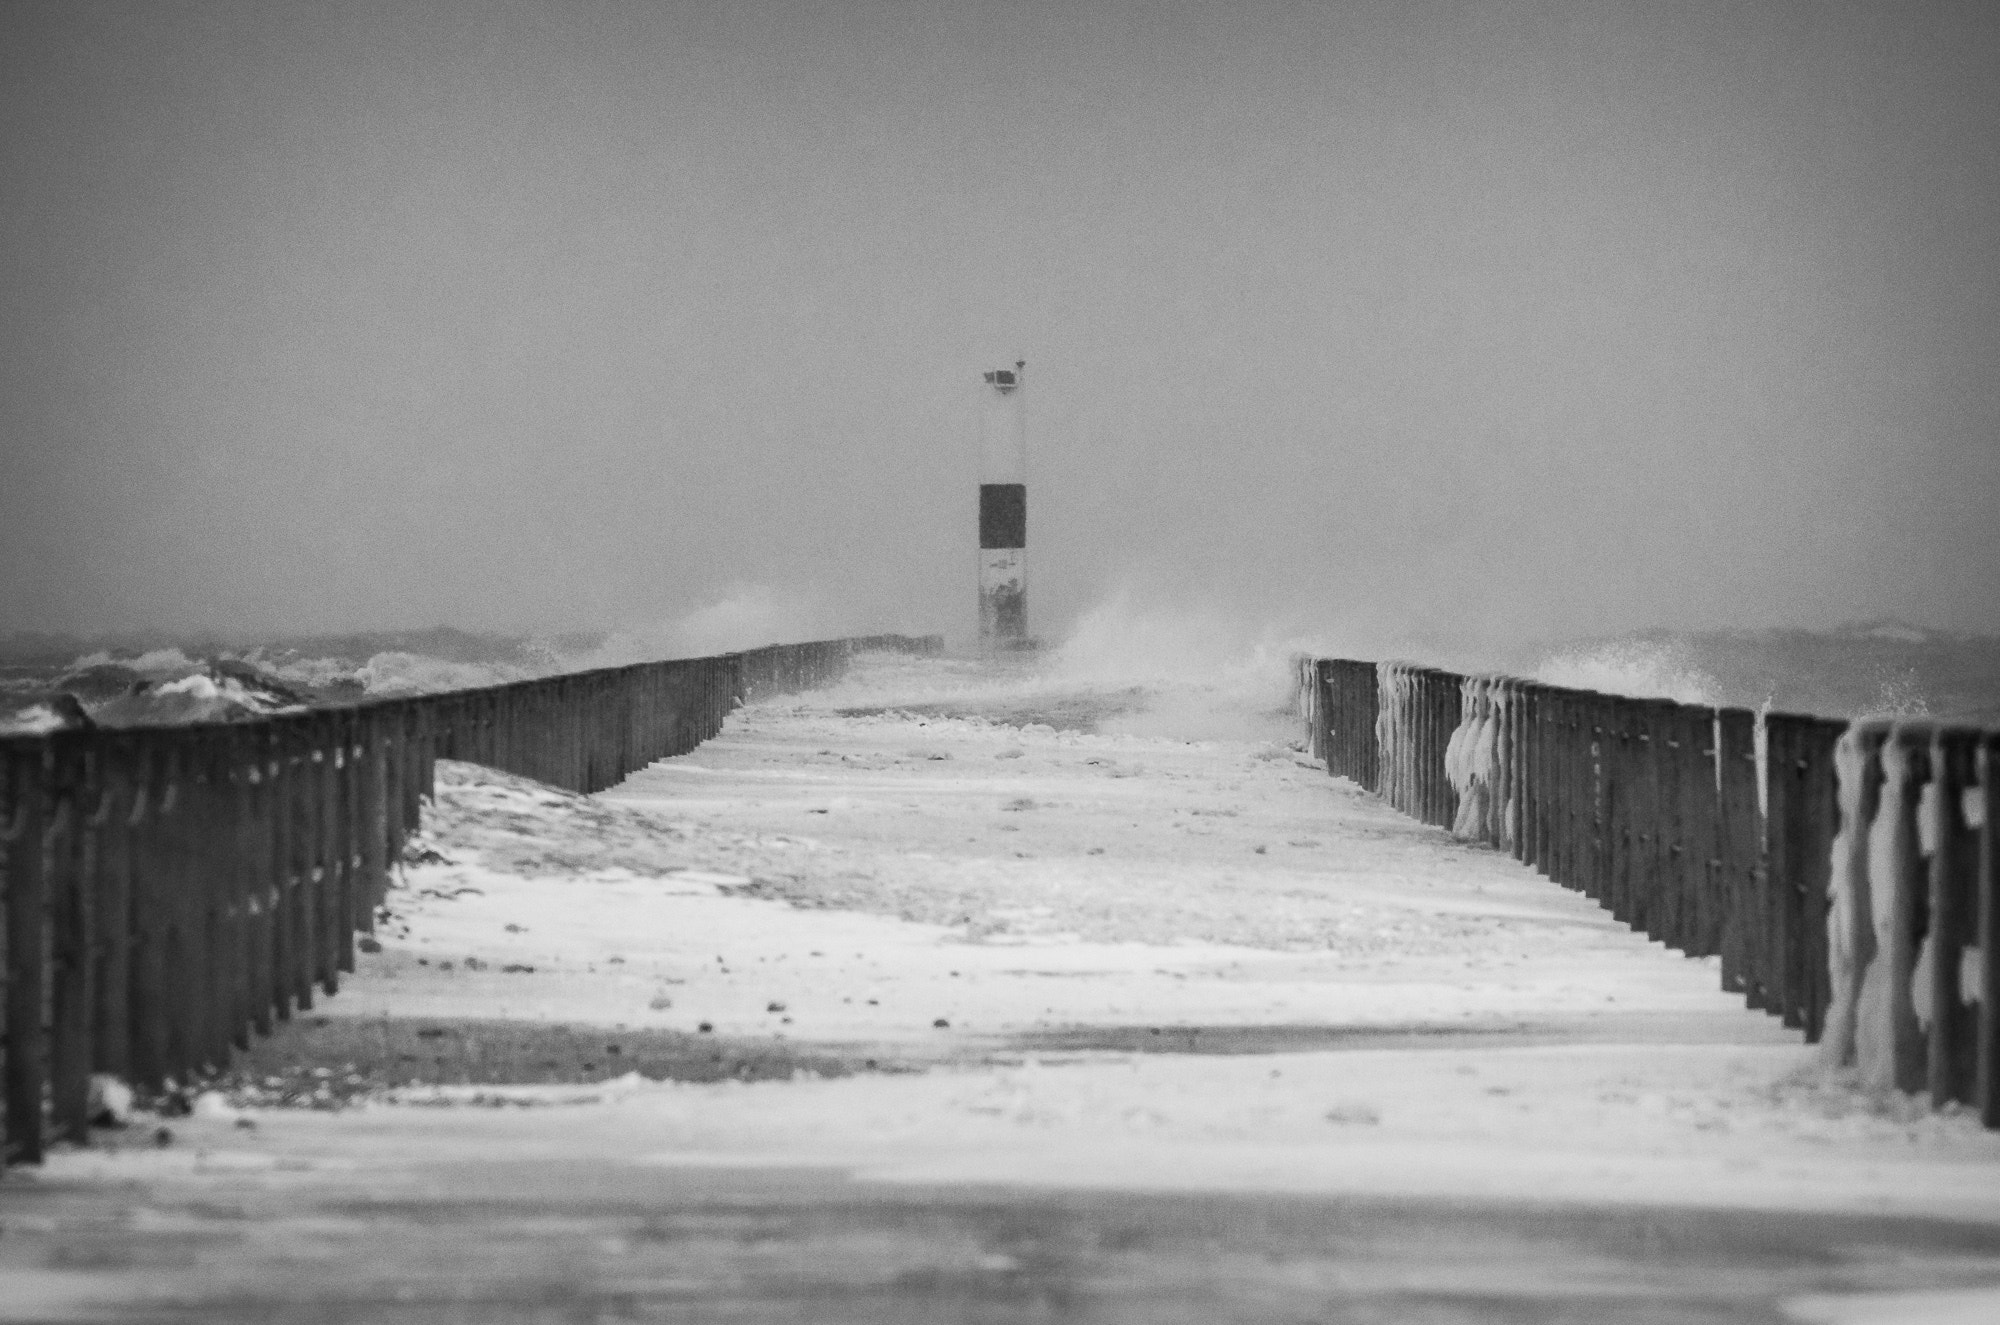 Photograph Lake Ontario Pier in a Storm by Steve Losh on 500px